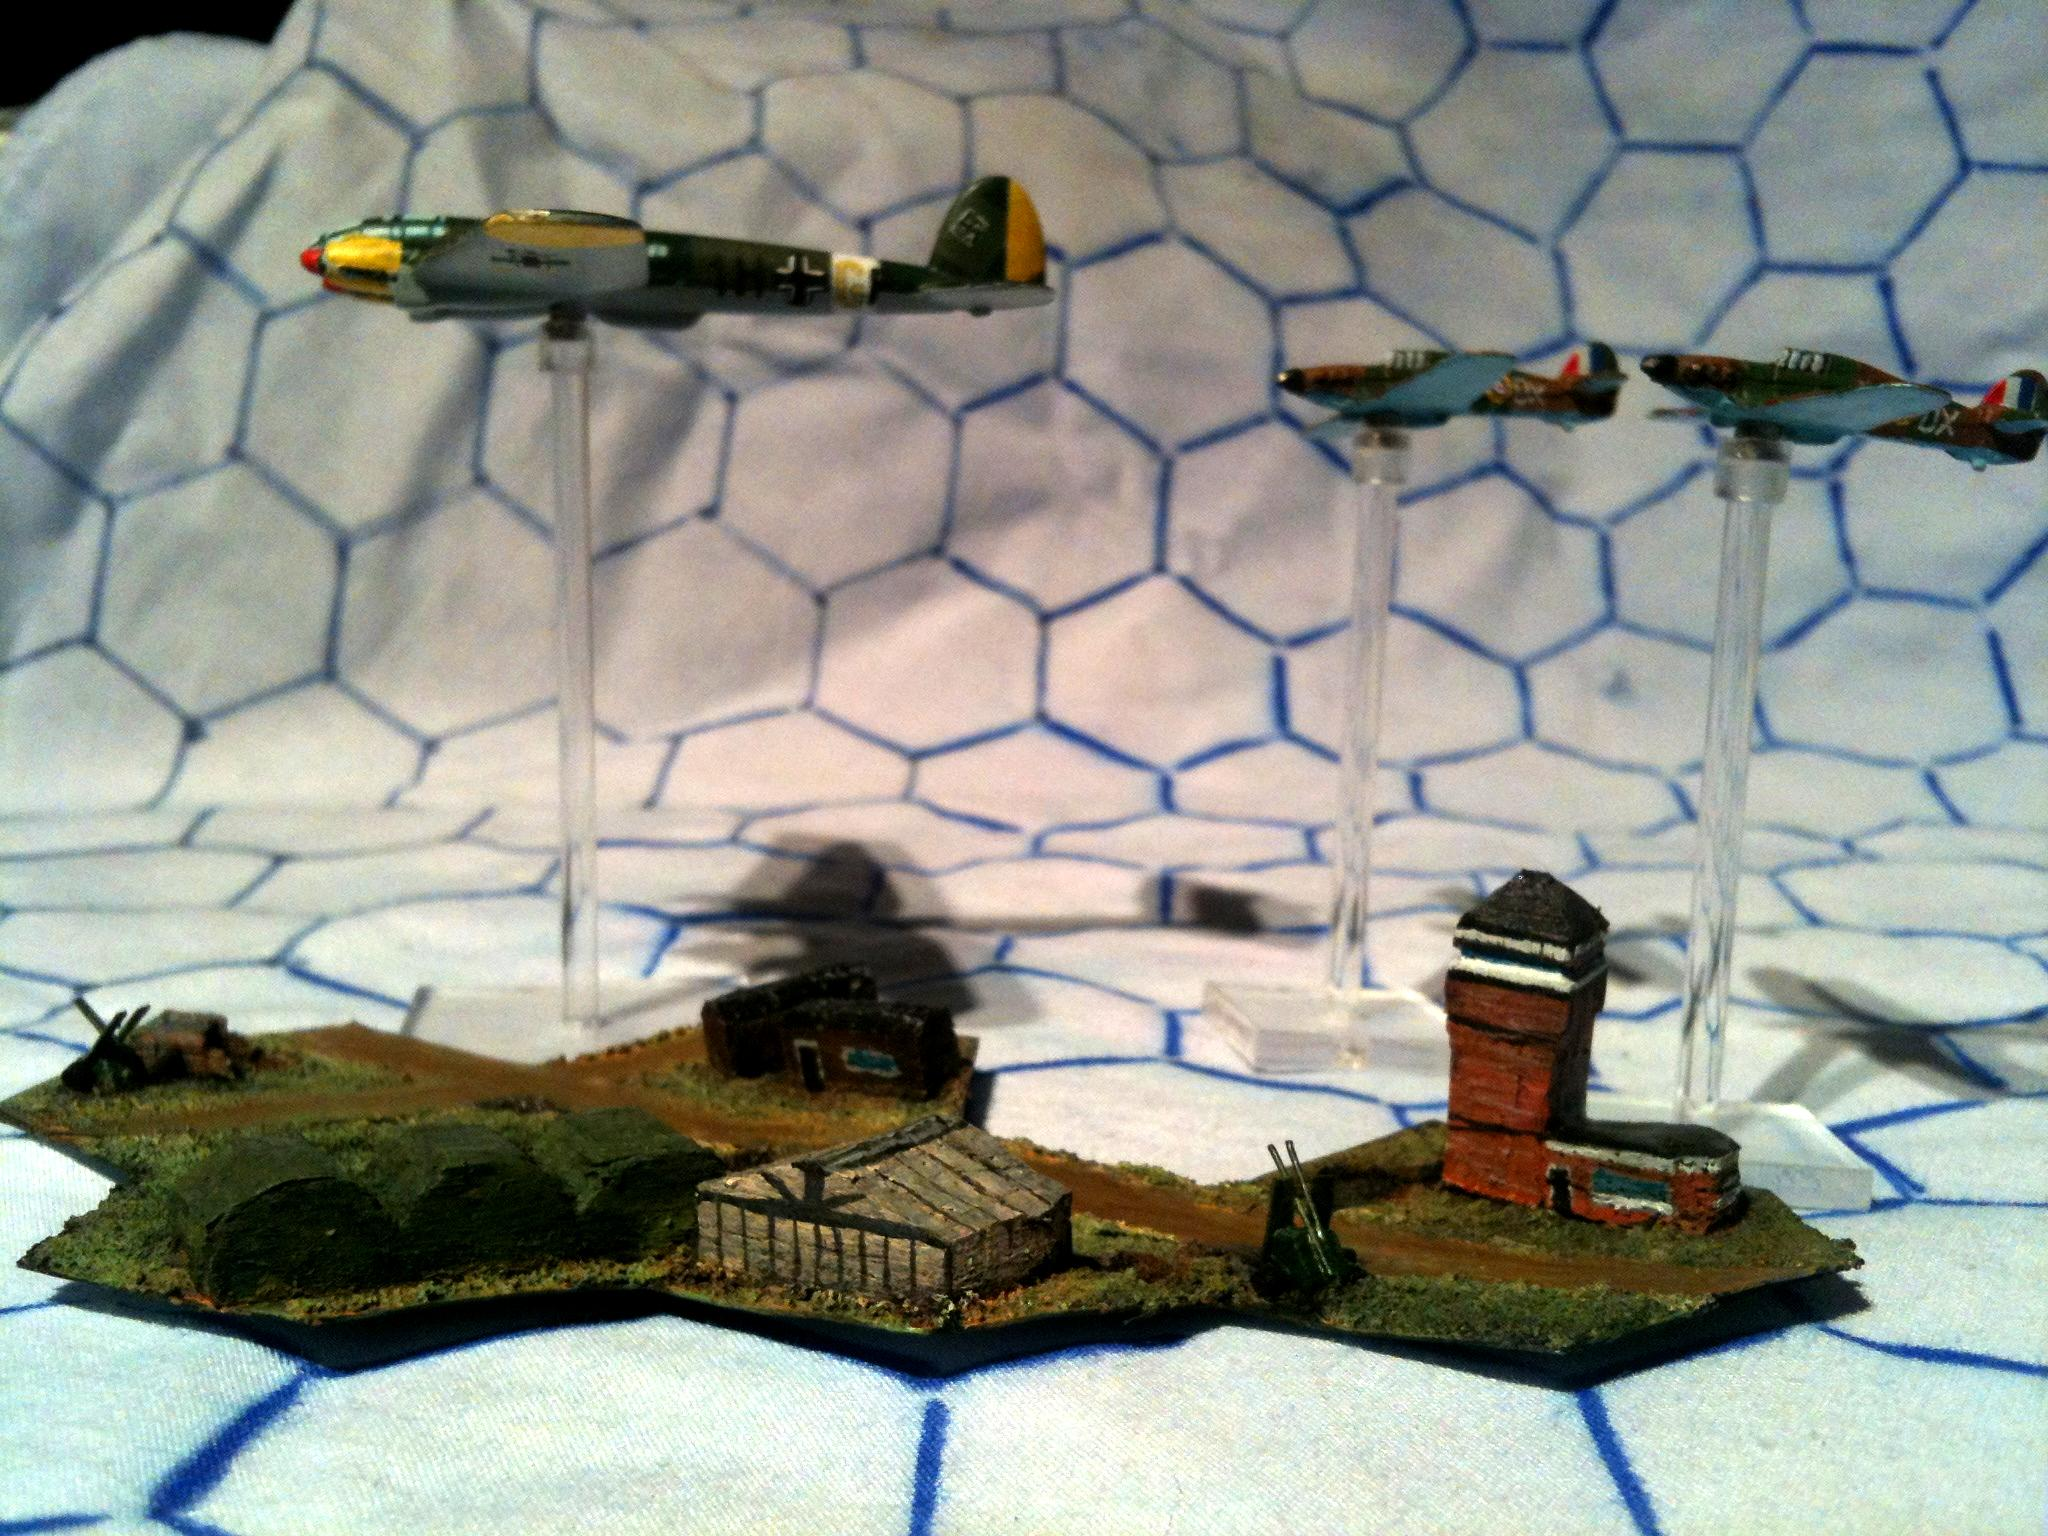 1:300, 6mm, Airborne, Aircraft, Airplane, Aviation, Check Your 6!, Fliers, Objective Marker, Planes, World War 2